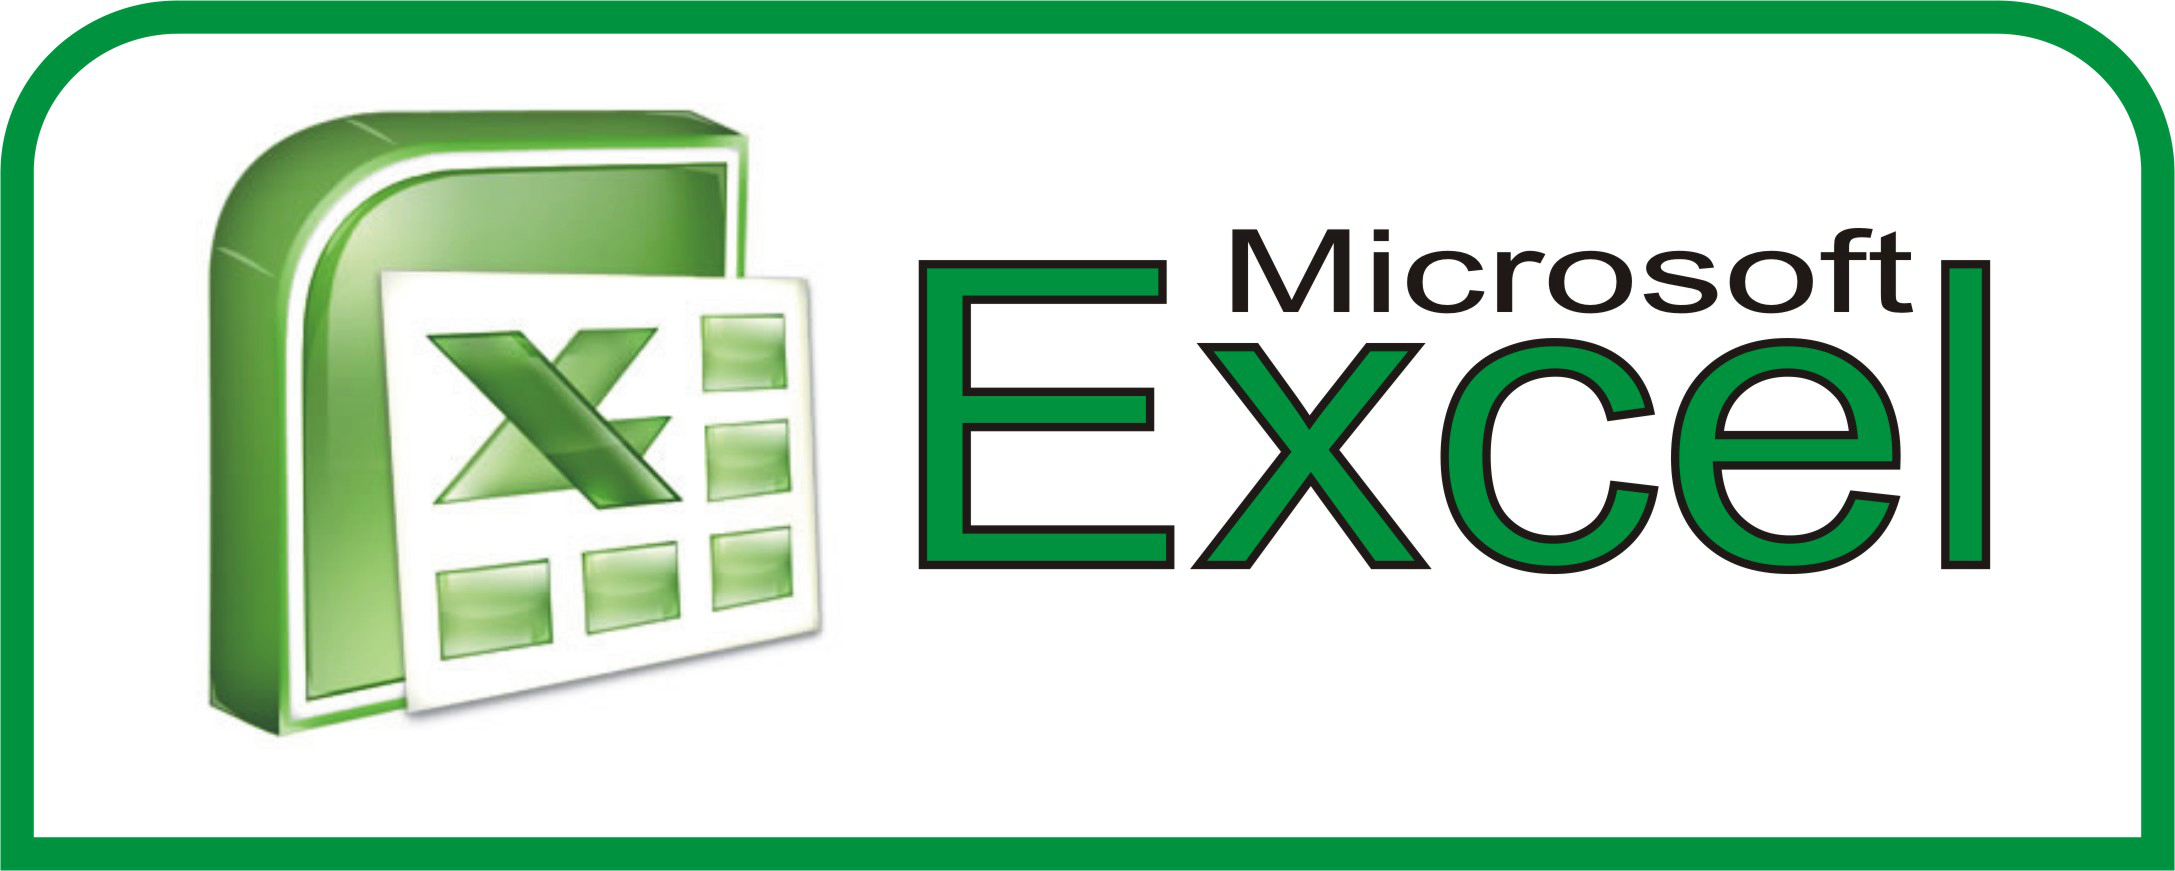 Ediblewildsus  Winning  Excel Shortcuts You Probably Didnt Know About  Techdissected With Engaging Household Budget Excel Template Besides Plot Points In Excel Furthermore How To Duplicate A Row In Excel With Alluring Excel Macro Else If Also Excel Training Pdf In Addition Free Project Management Templates Excel And Loan Repayment Excel Template As Well As Mail Merge From Excel To Excel Additionally Excel Online Classes Free From Techdissectedcom With Ediblewildsus  Engaging  Excel Shortcuts You Probably Didnt Know About  Techdissected With Alluring Household Budget Excel Template Besides Plot Points In Excel Furthermore How To Duplicate A Row In Excel And Winning Excel Macro Else If Also Excel Training Pdf In Addition Free Project Management Templates Excel From Techdissectedcom